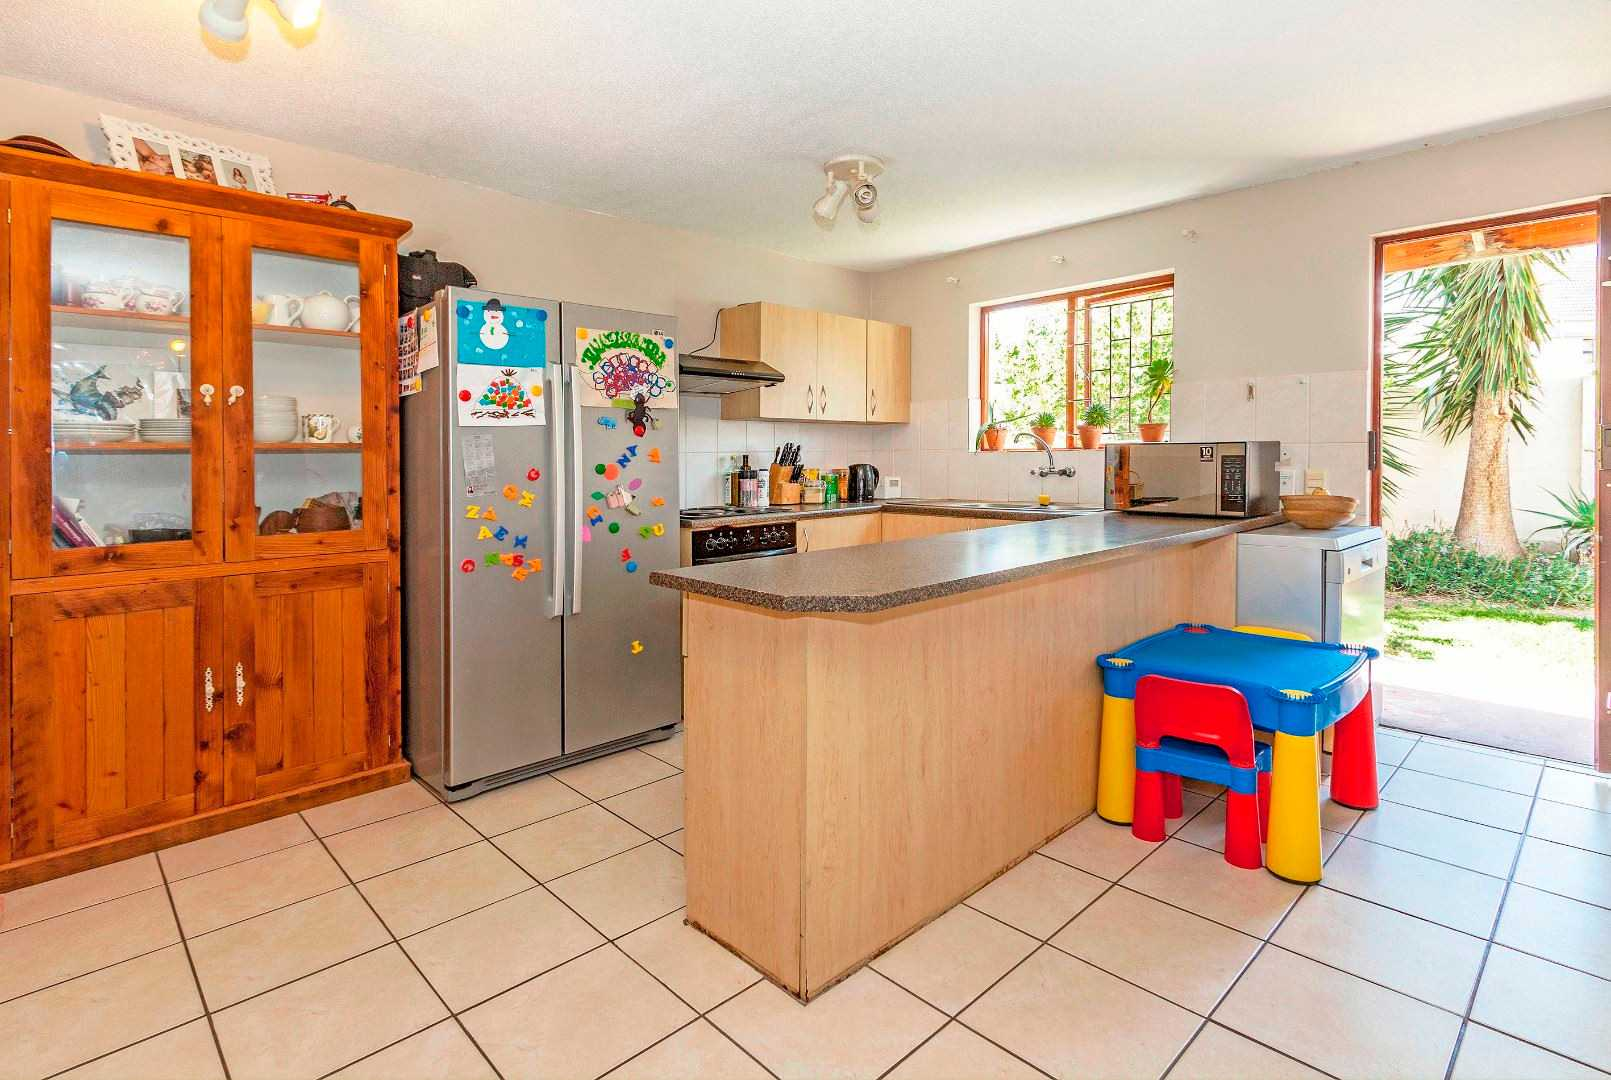 2 Bedroom Home In Sought After The Vines, Heritage Park